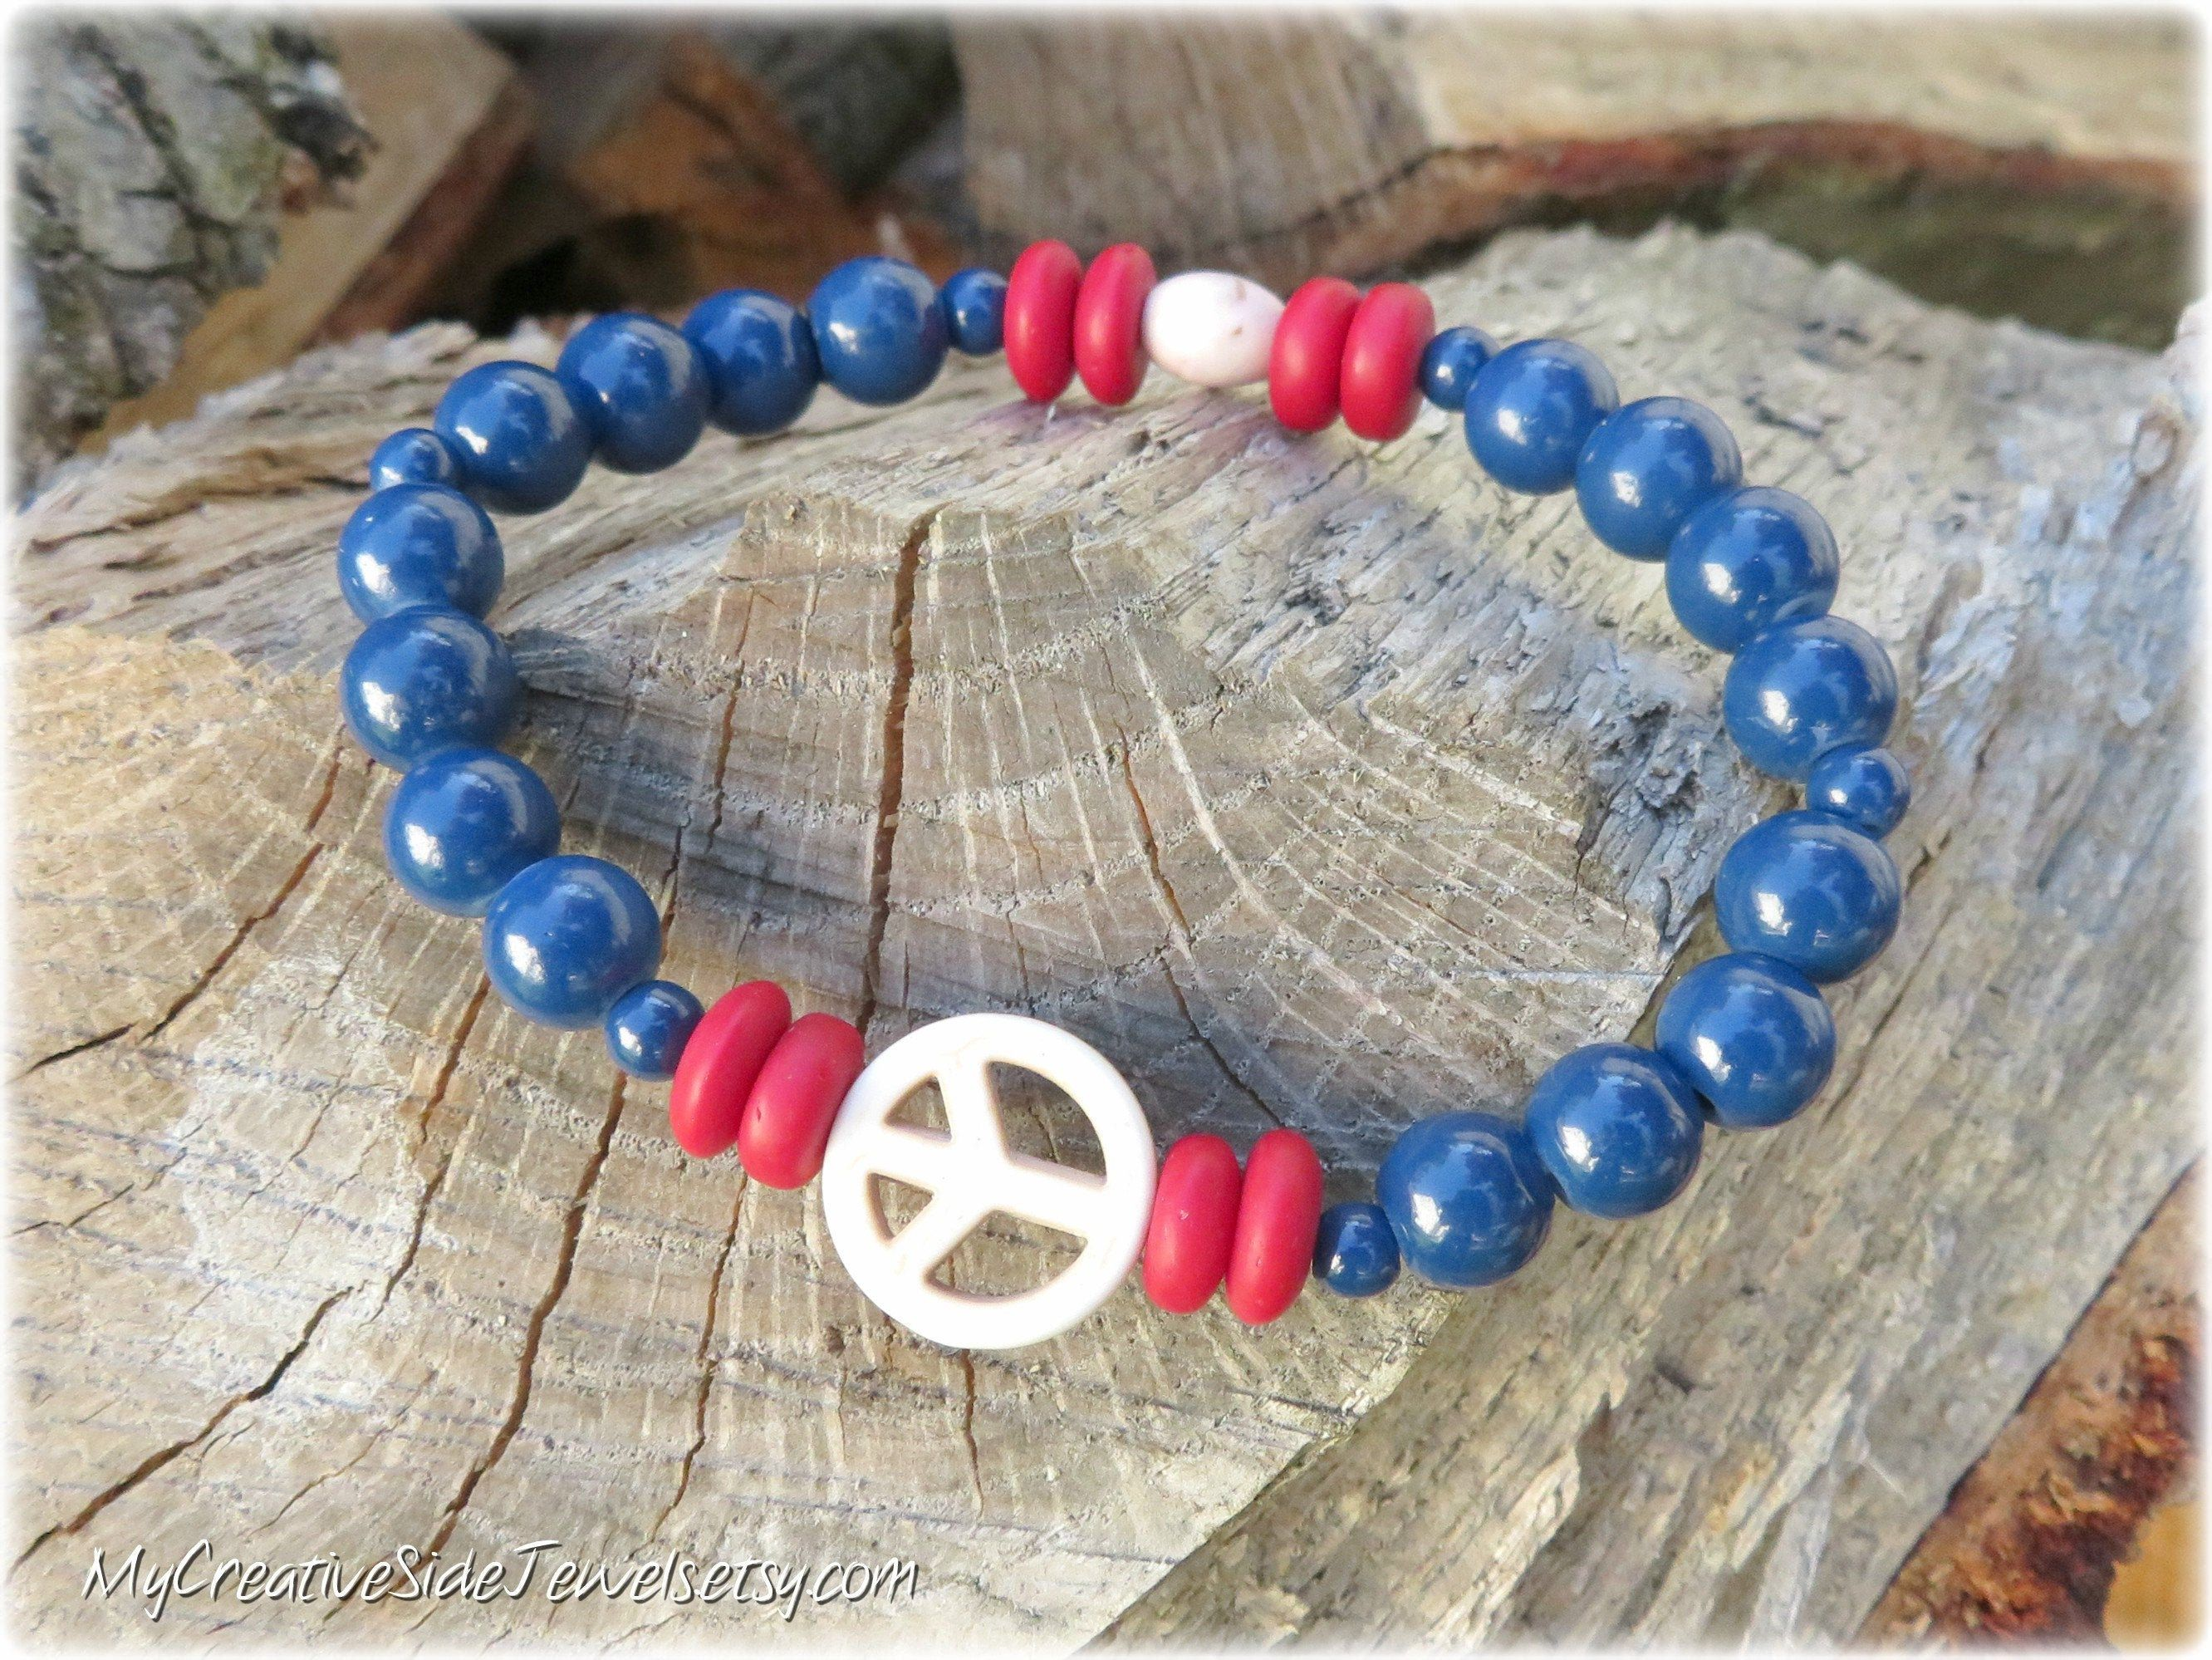 Red White And Blue Bracelet Peace Sign Bracelet Beaded Etsy In 2020 Patriotic Jewelry Hippie Jewelry Beaded Jewelry Designs